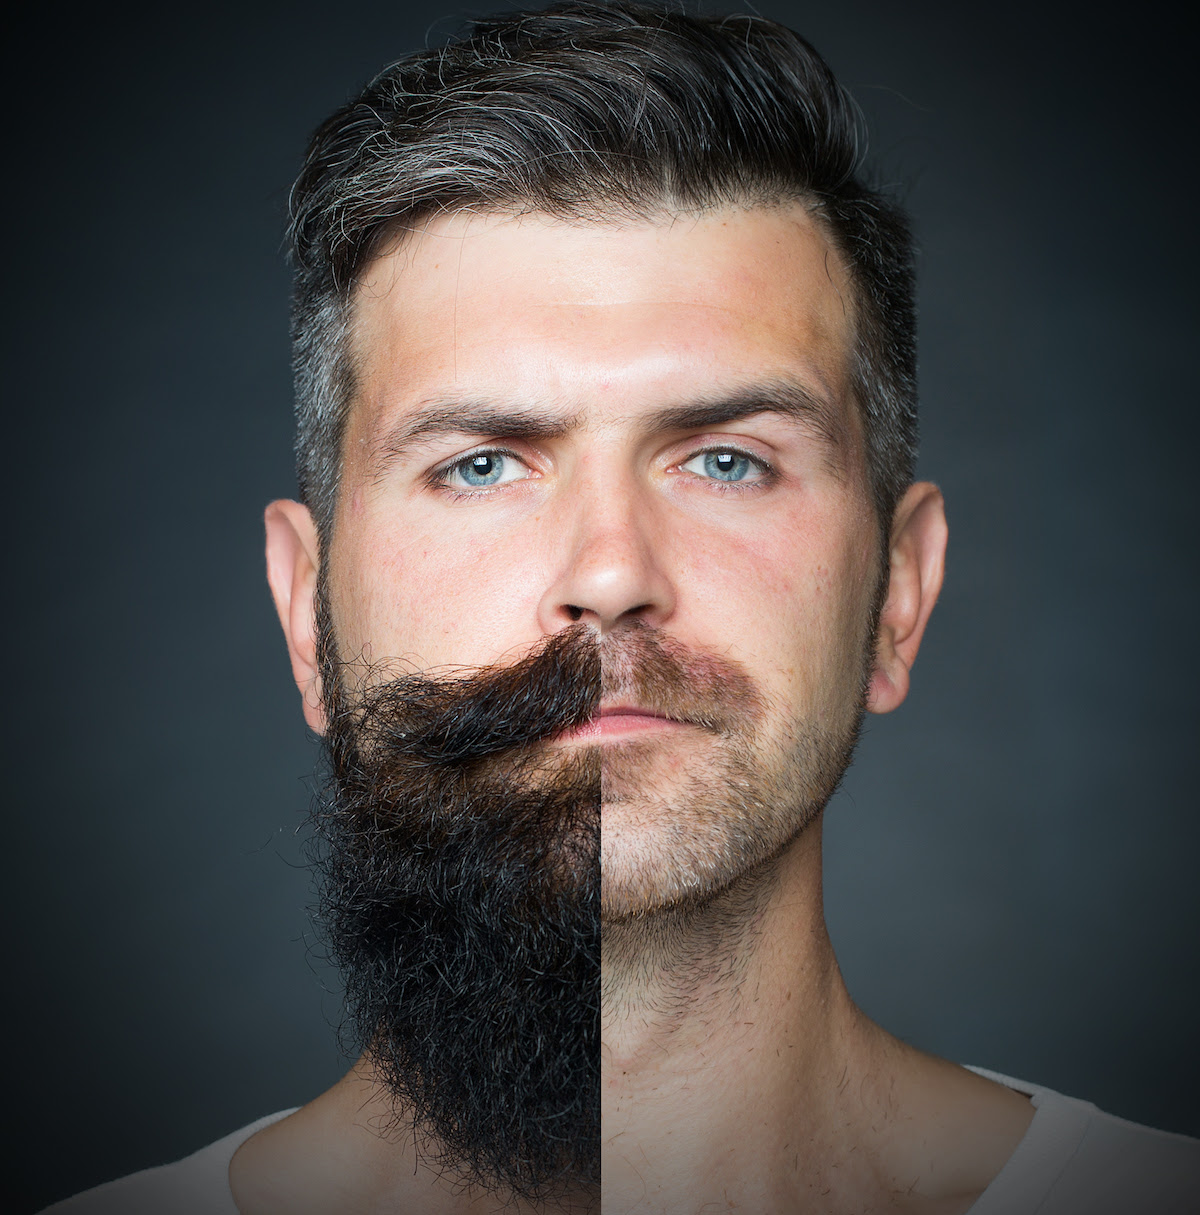 Top 4 Beard Trends 2018 Beard Styles Turning Heads In The New Year